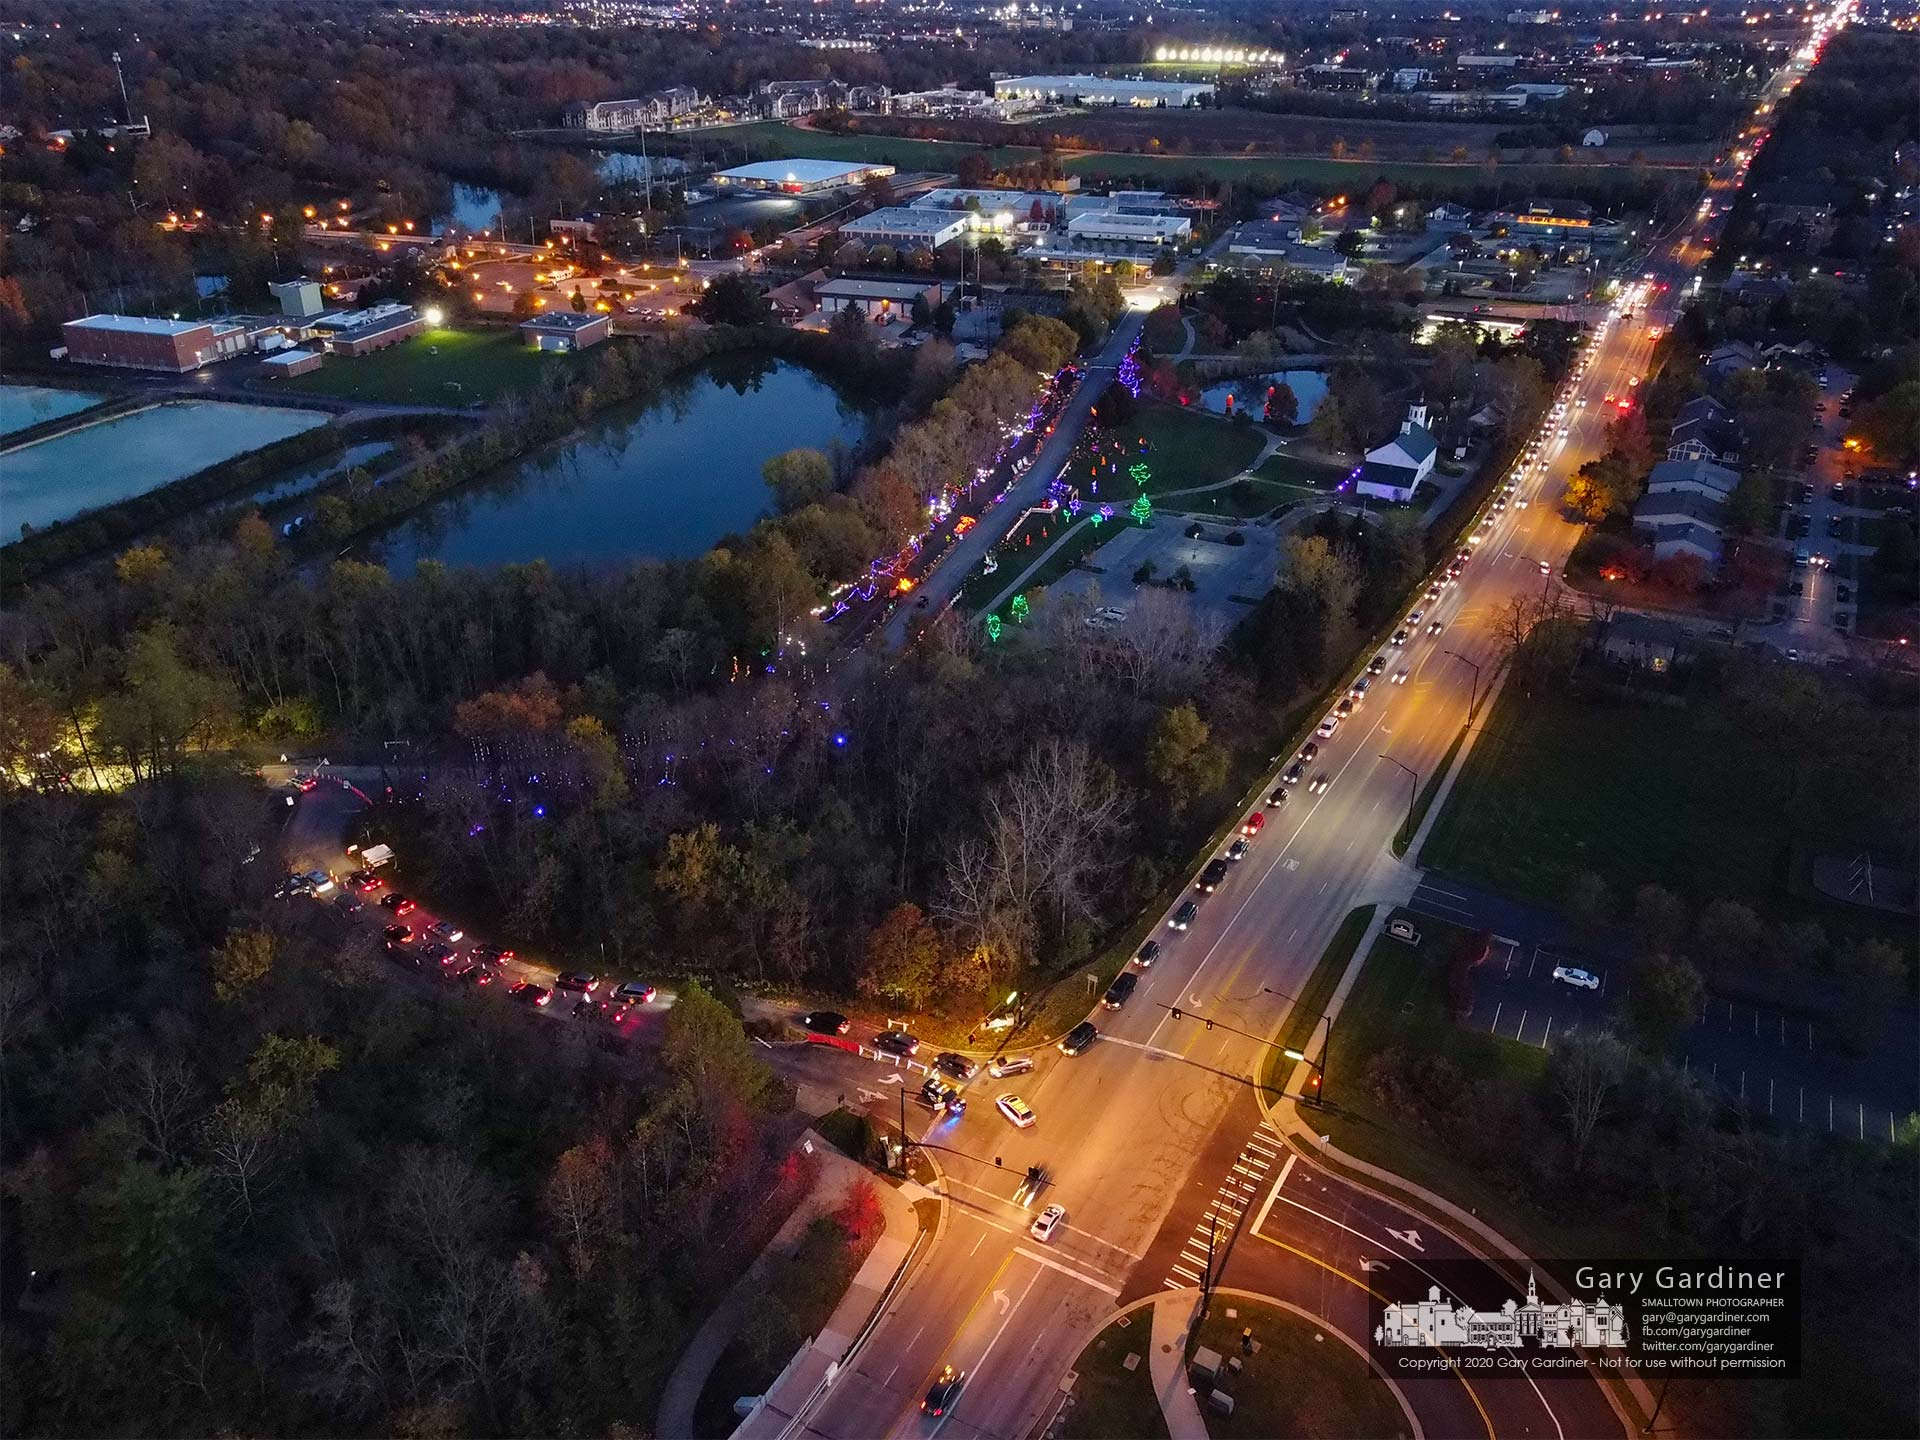 Cars line up at the entrance to Heritage Park on Cleveland Avenue for Pumpkin Glow drive-thru on Halloween night. My Final Photo for Oct. 31, 2020.